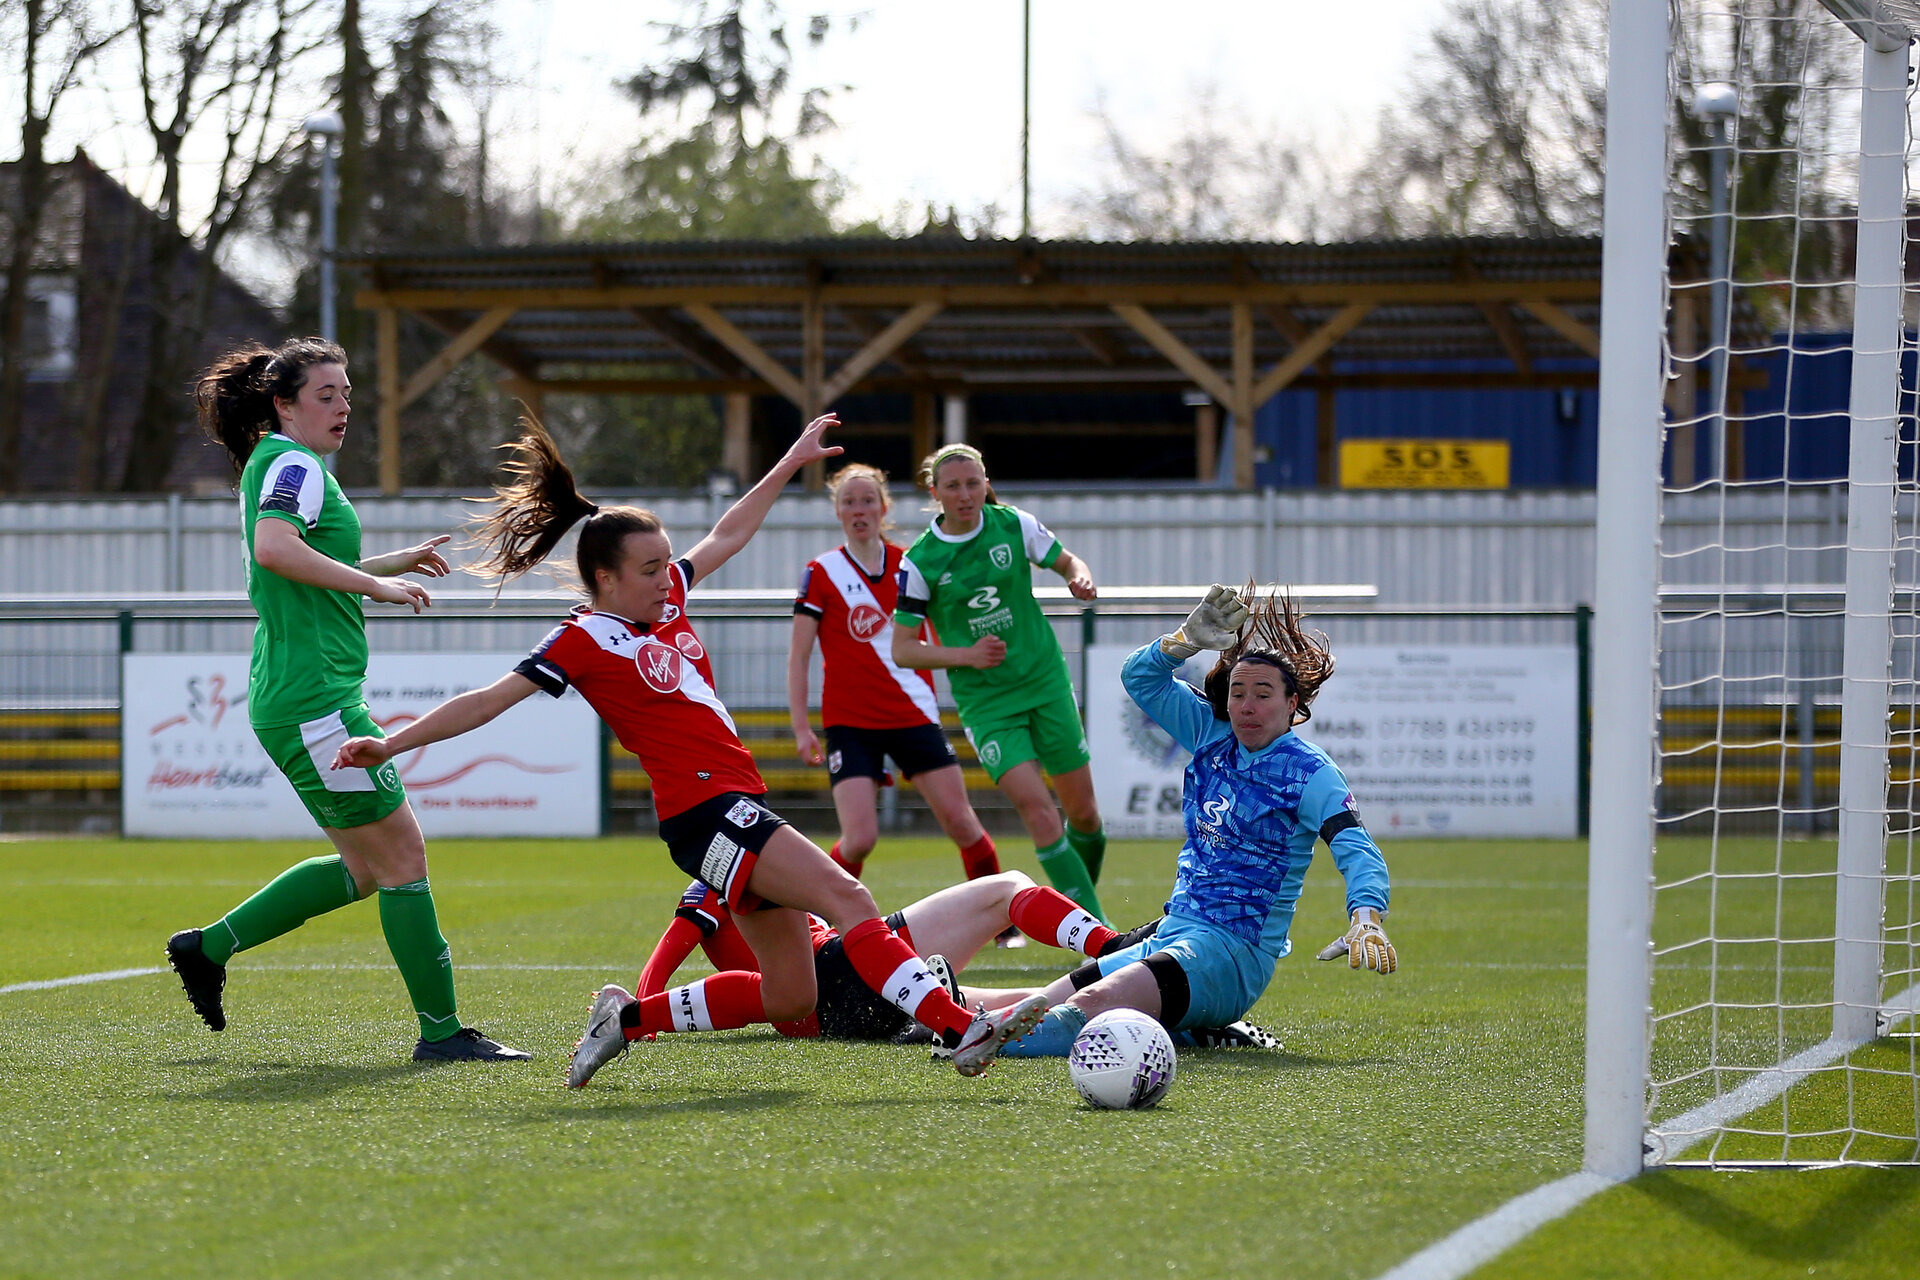 SOUTHAMPTON, ENGLAND - APRIL 11:  during the Vitality Women's FA Cup third round match between Southampton Women and Yeovil United Women at The Snows Stadium on April 11, 2021 in Southampton, England. (Photo by Isabelle Field/Southampton FC via Getty Images)